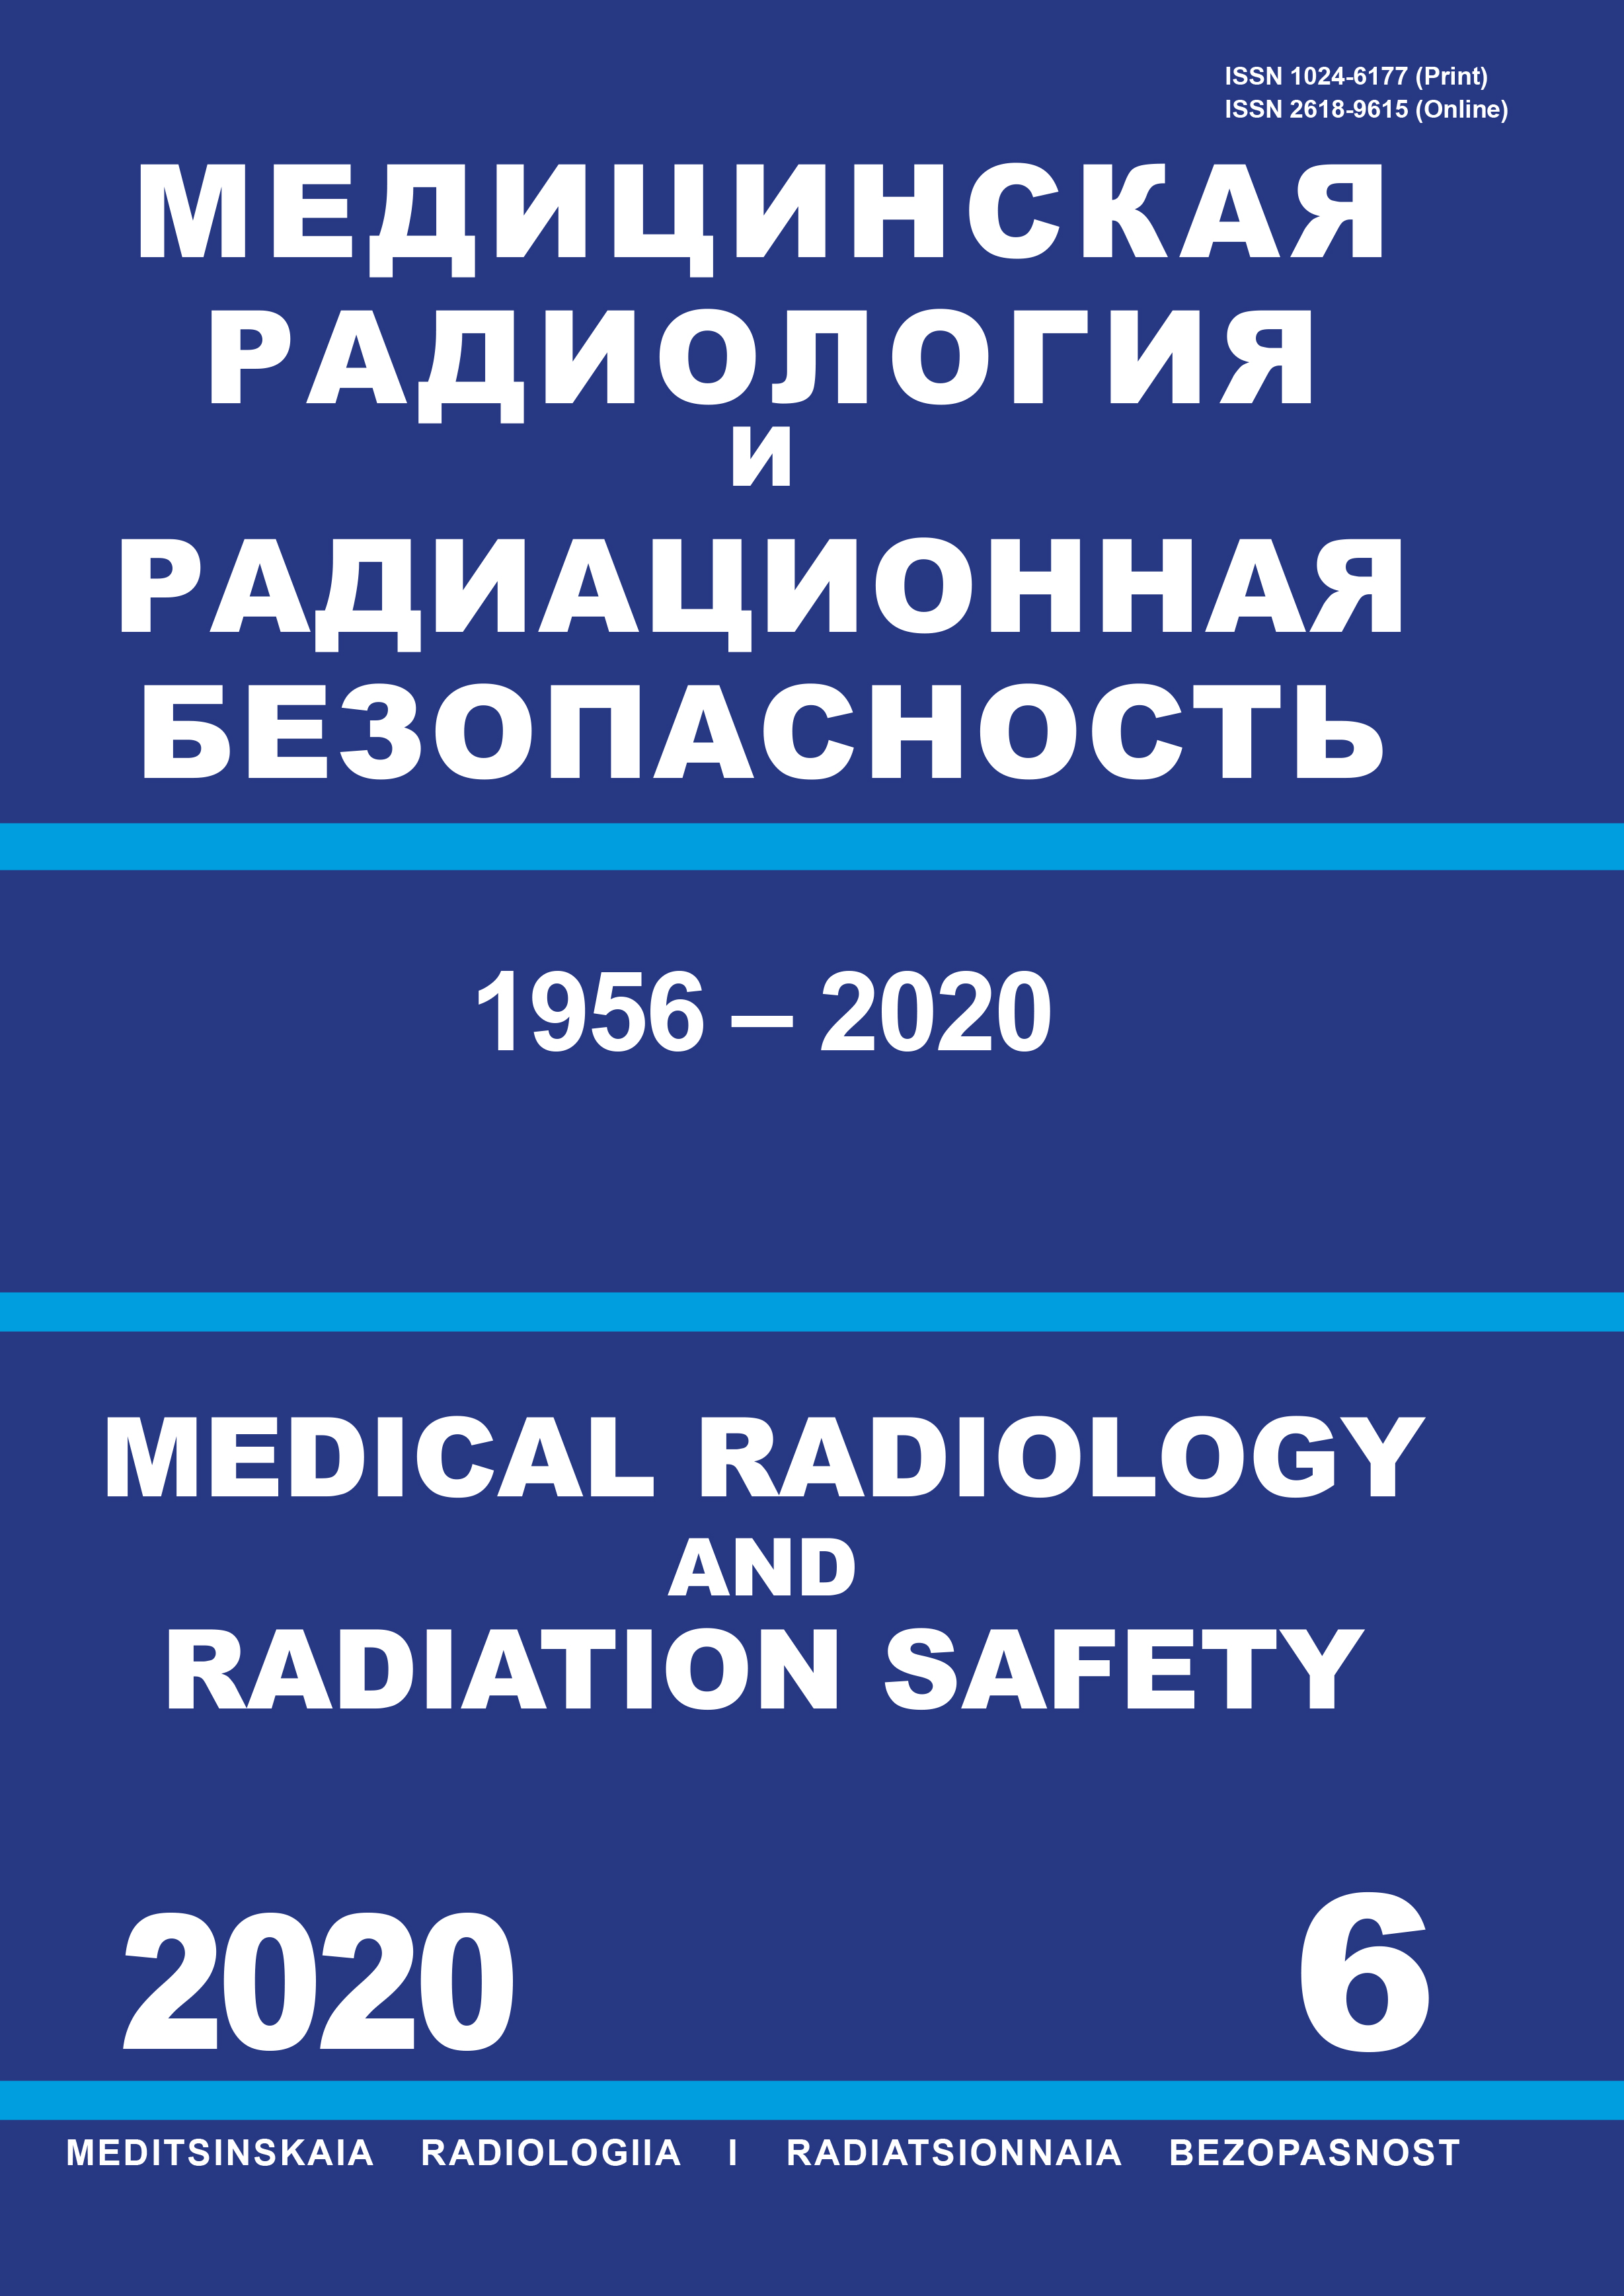 Medical Radiology and radiation safety